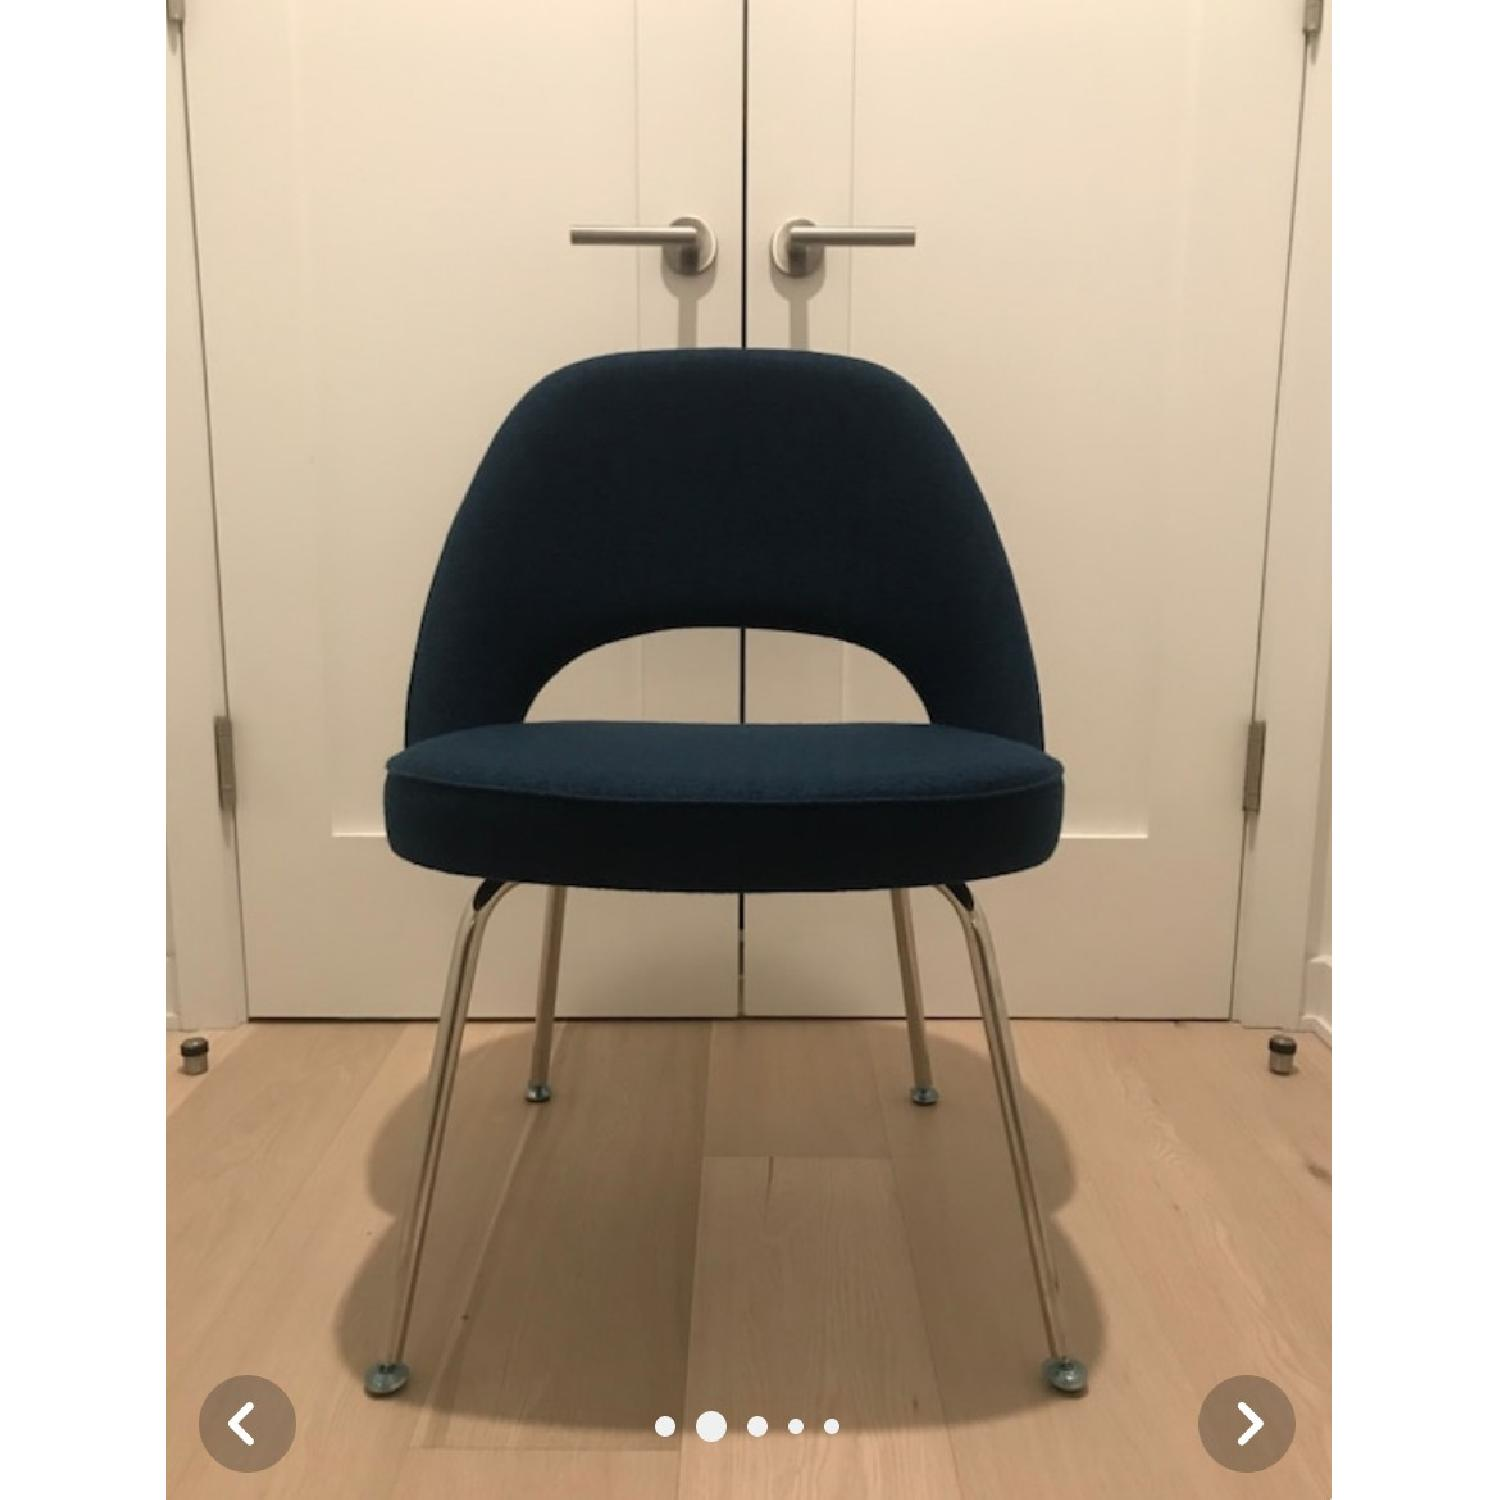 Rove Concepts Executive Side Chairs in Boucle Wool Twilight - image-3